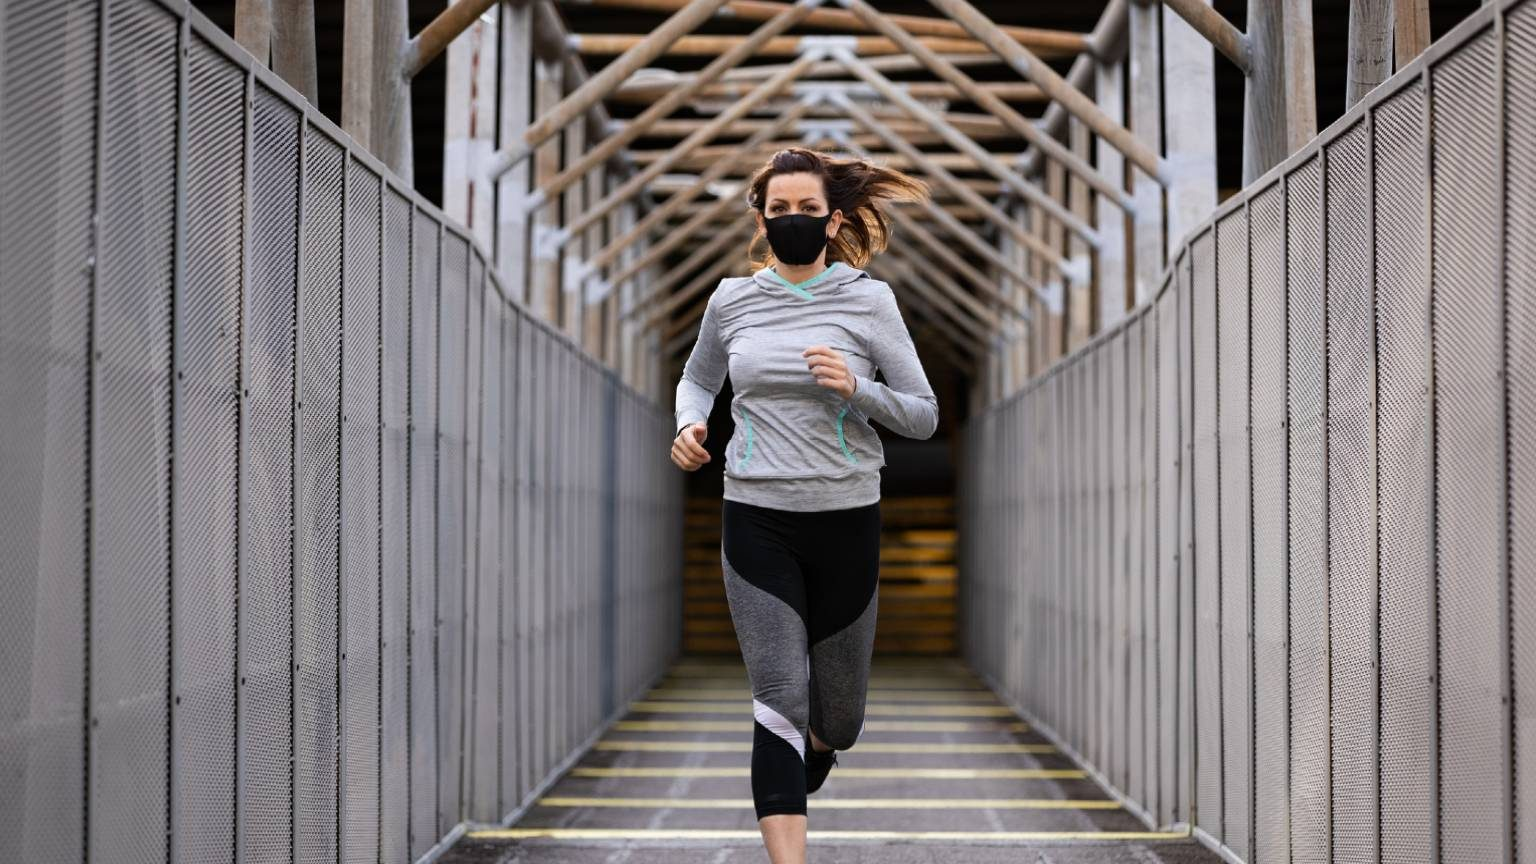 Running woman in mask